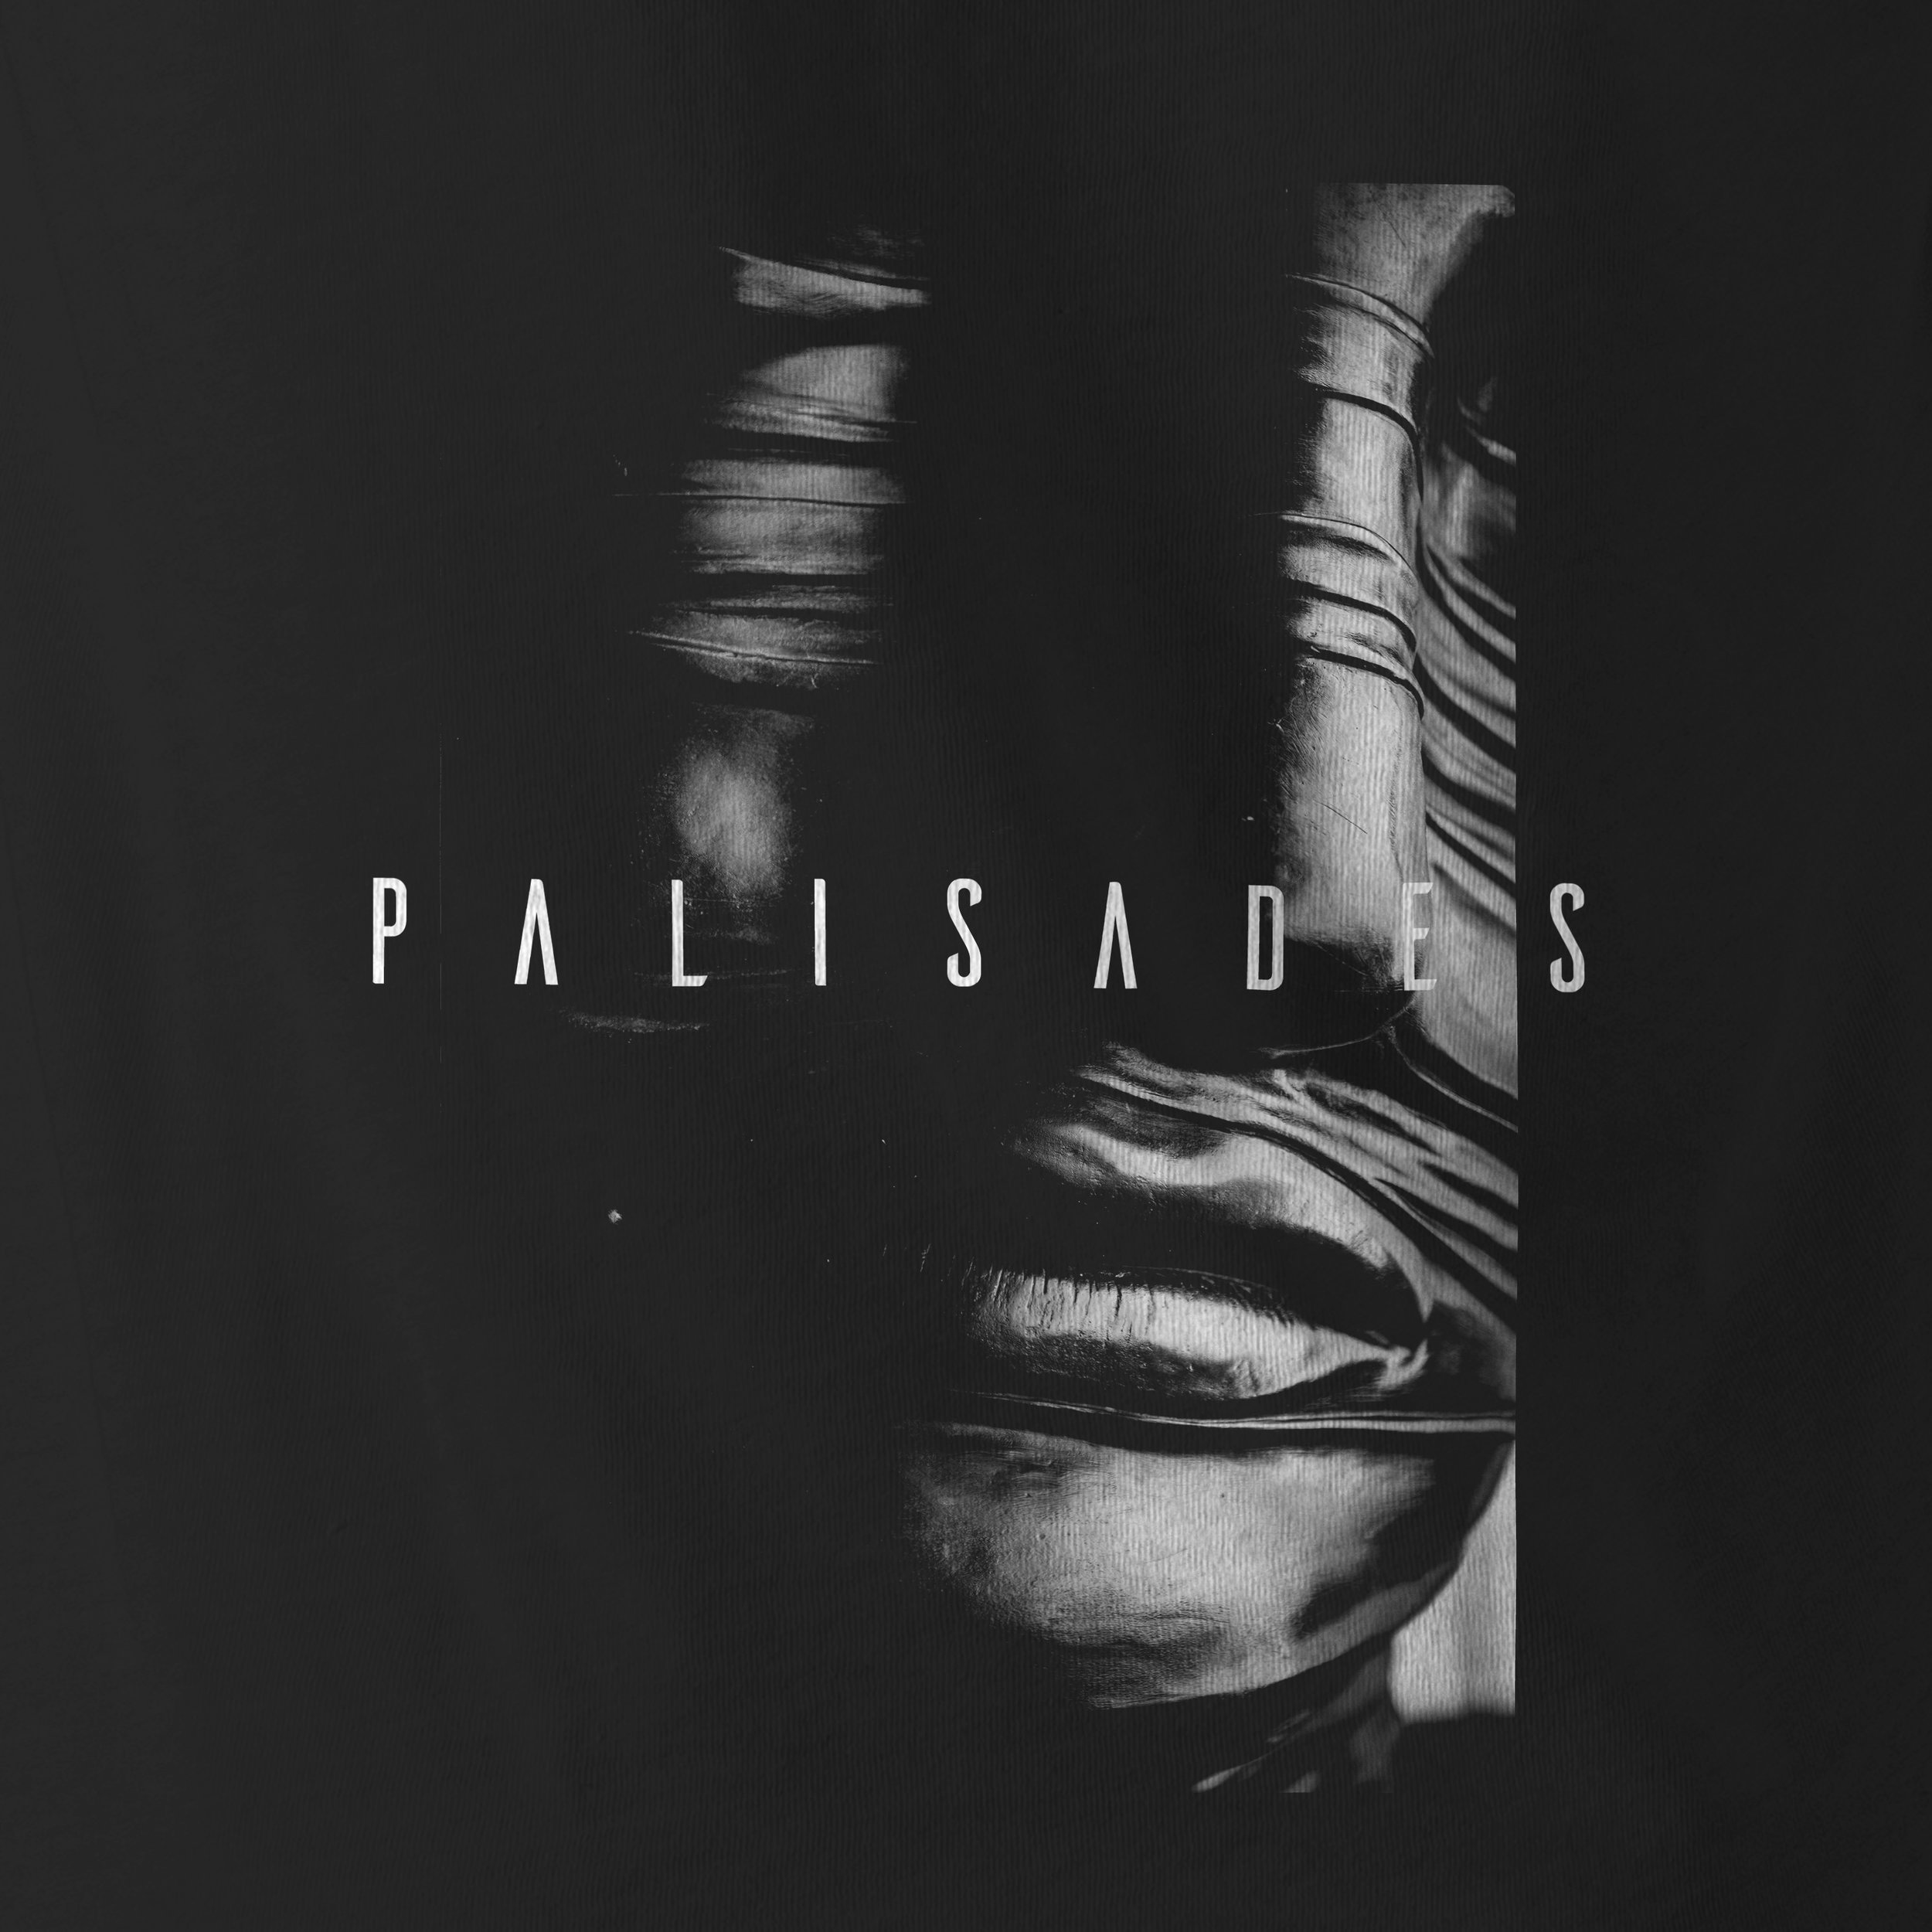 palisades-wrapped-face.jpg